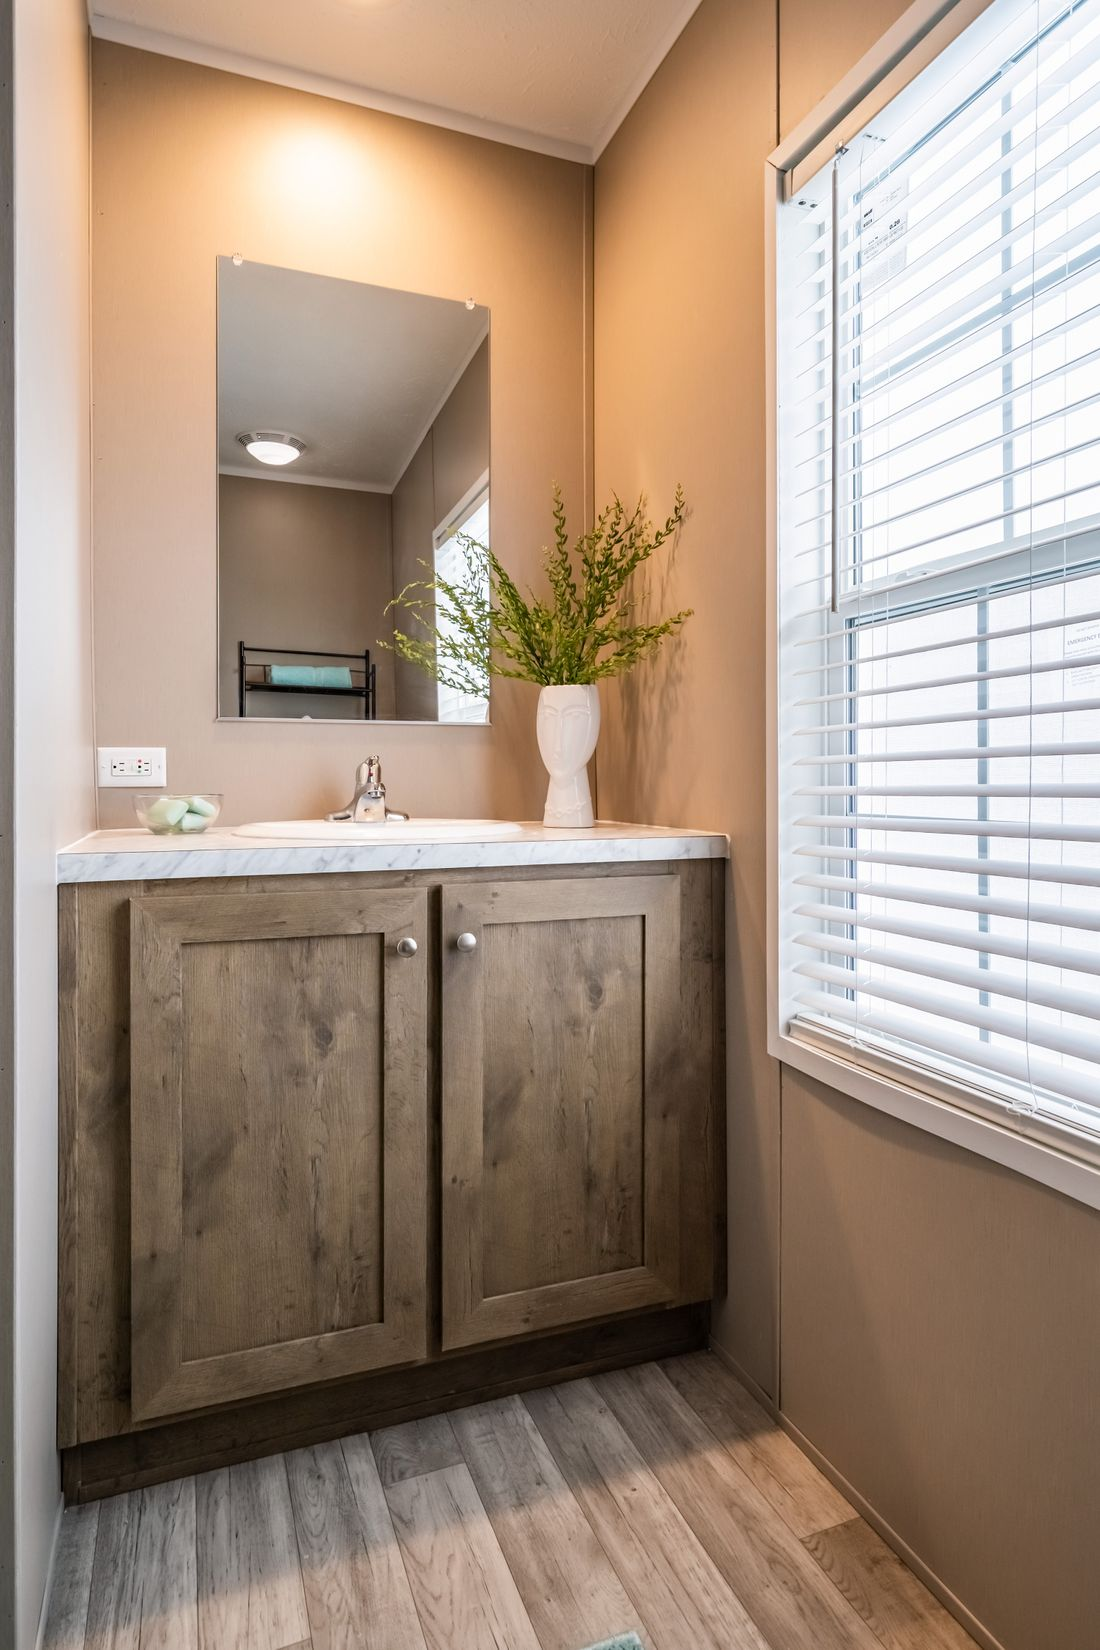 The ULTRA PRO 72 Guest Bathroom. This Manufactured Mobile Home features 4 bedrooms and 2 baths.